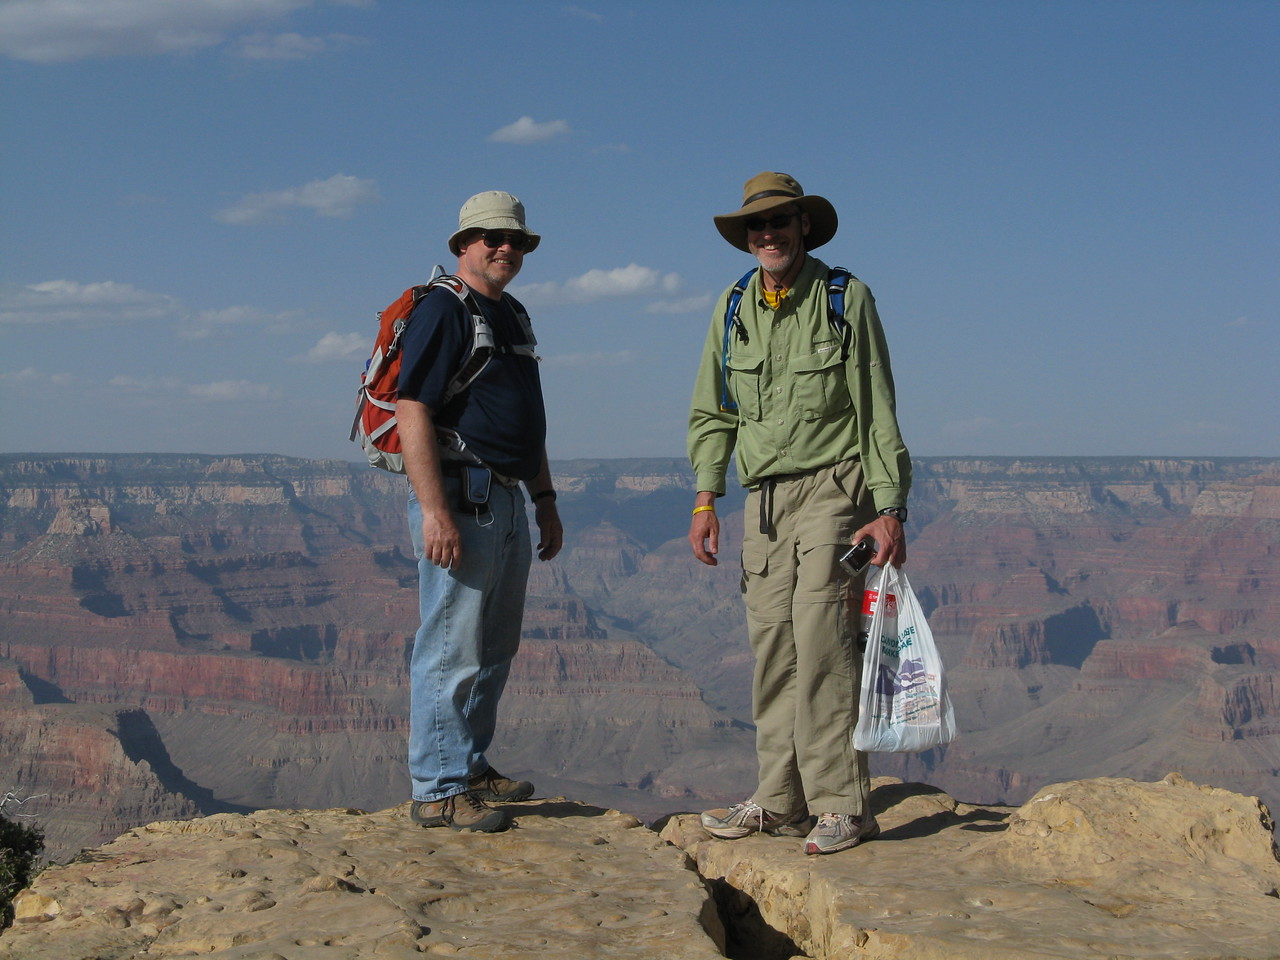 Wendell and Glenn standing very close to the edge of the rim.